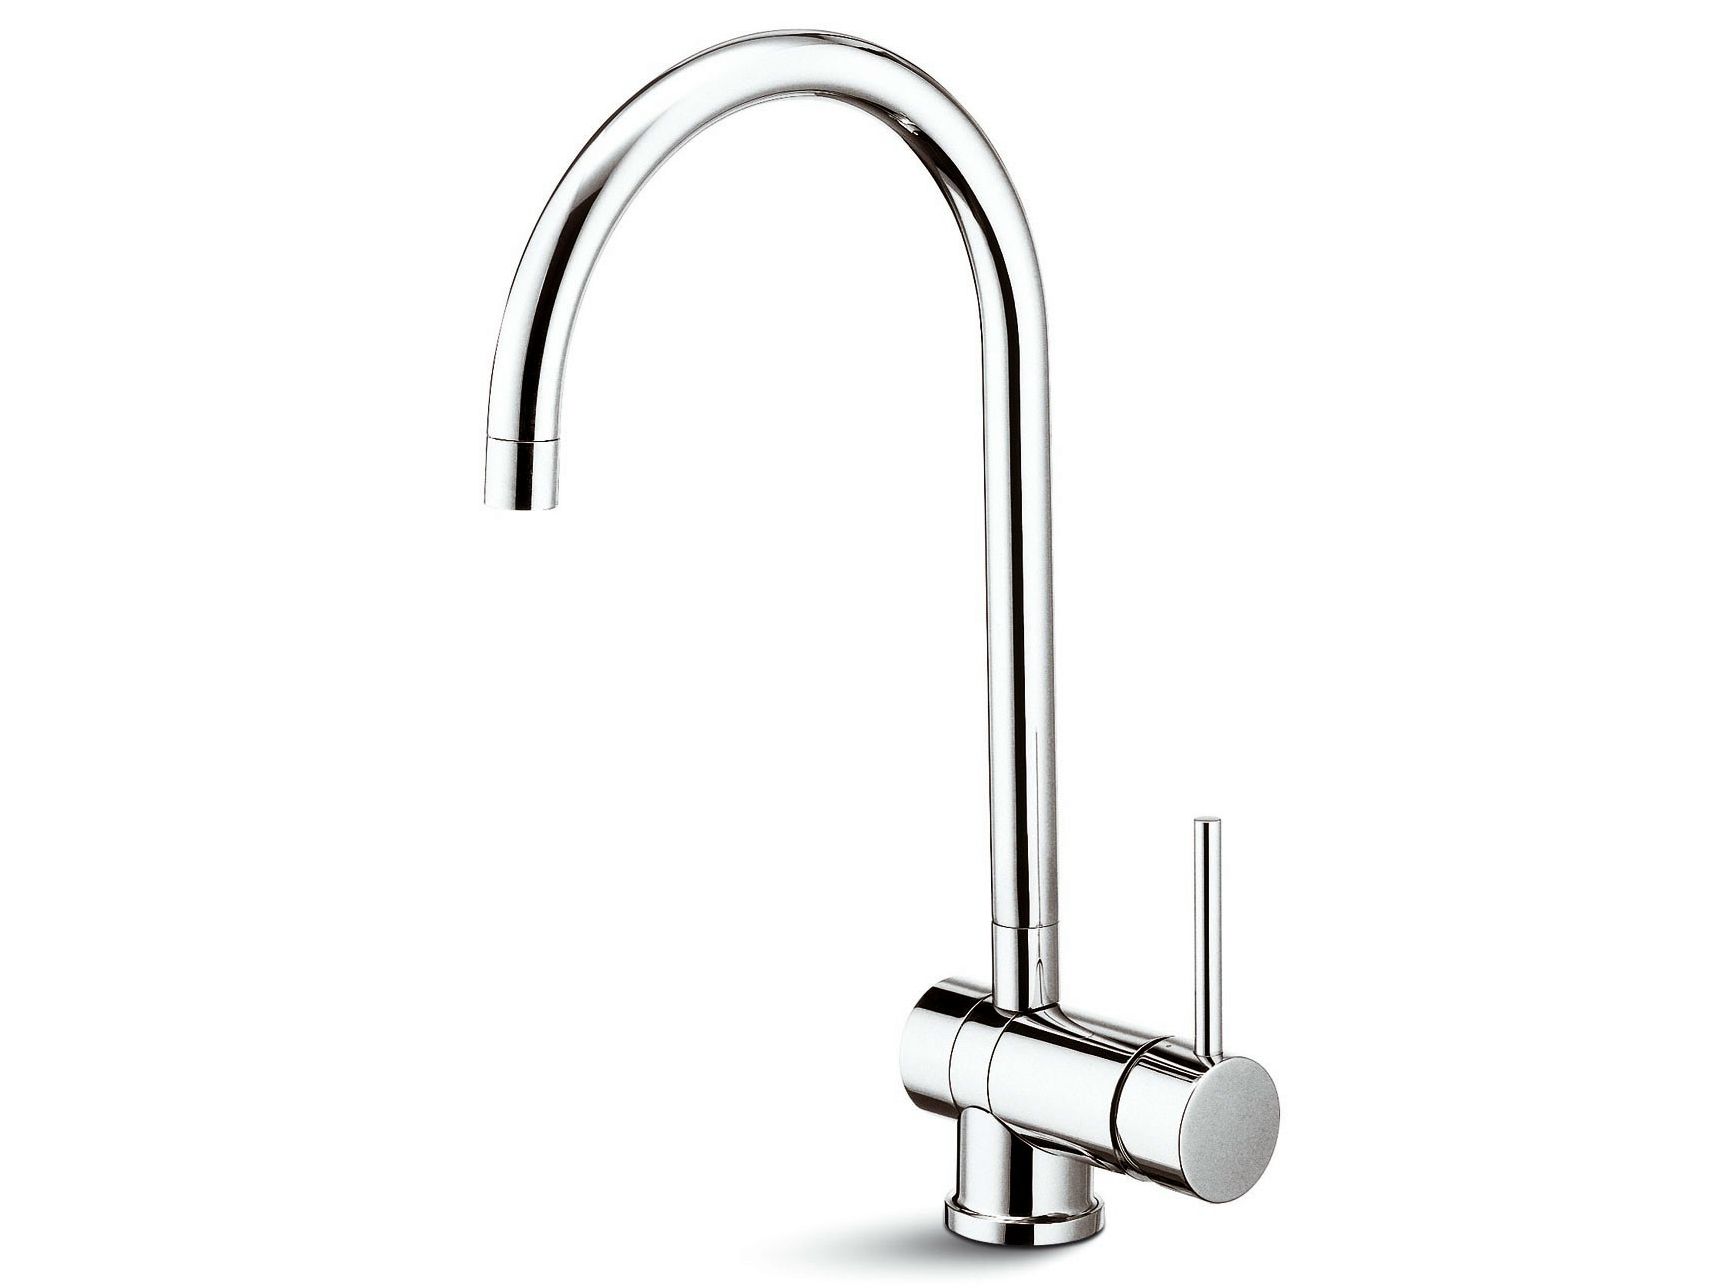 White Kitchen Mixer Tap san marco boise kitchen tap brushed nickel. grohe kitchen taps